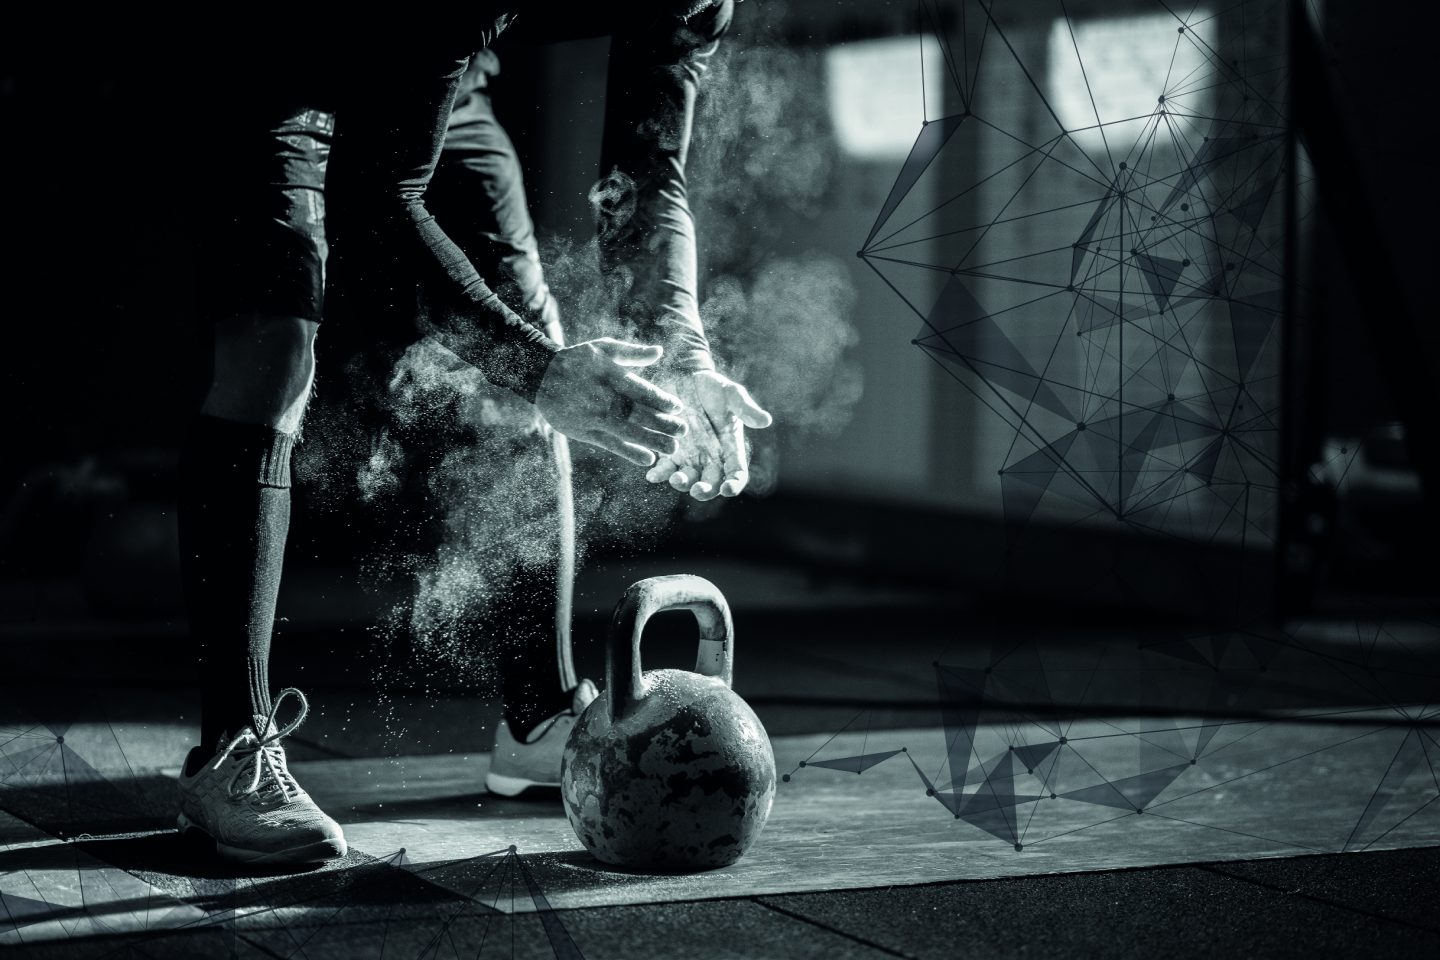 Hands in a puff of a chalk cloud a pair of hands reaches for a kettle bell.